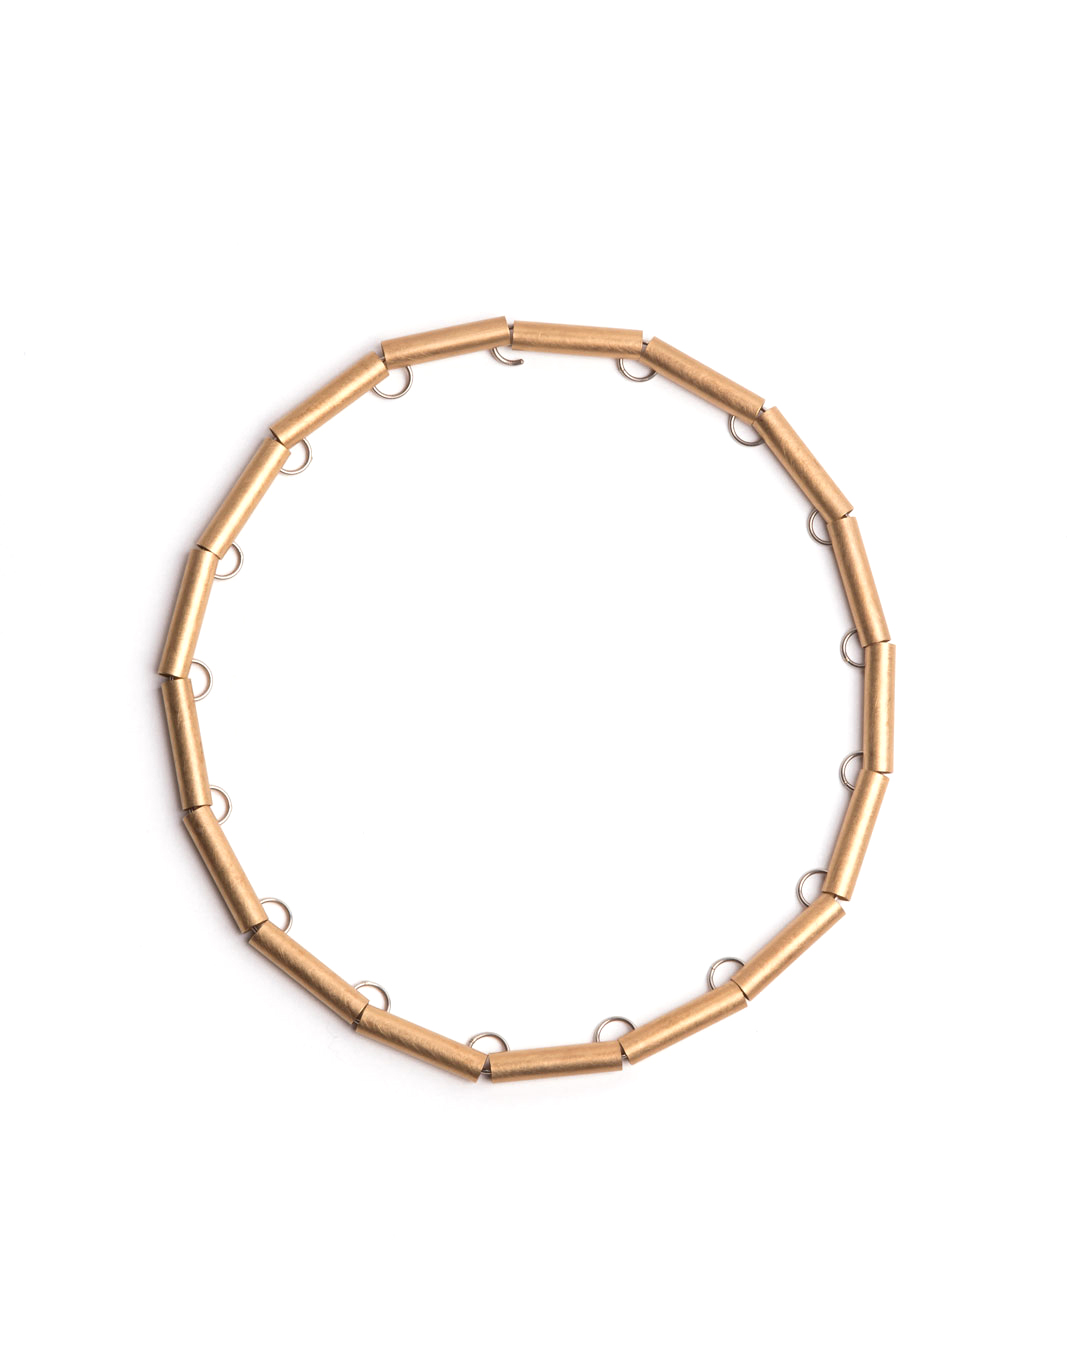 Herman Hermsen, Tube Chain, 1998, necklace; yellow gold, white gold, 435 x 8 x 6 mm, €6450